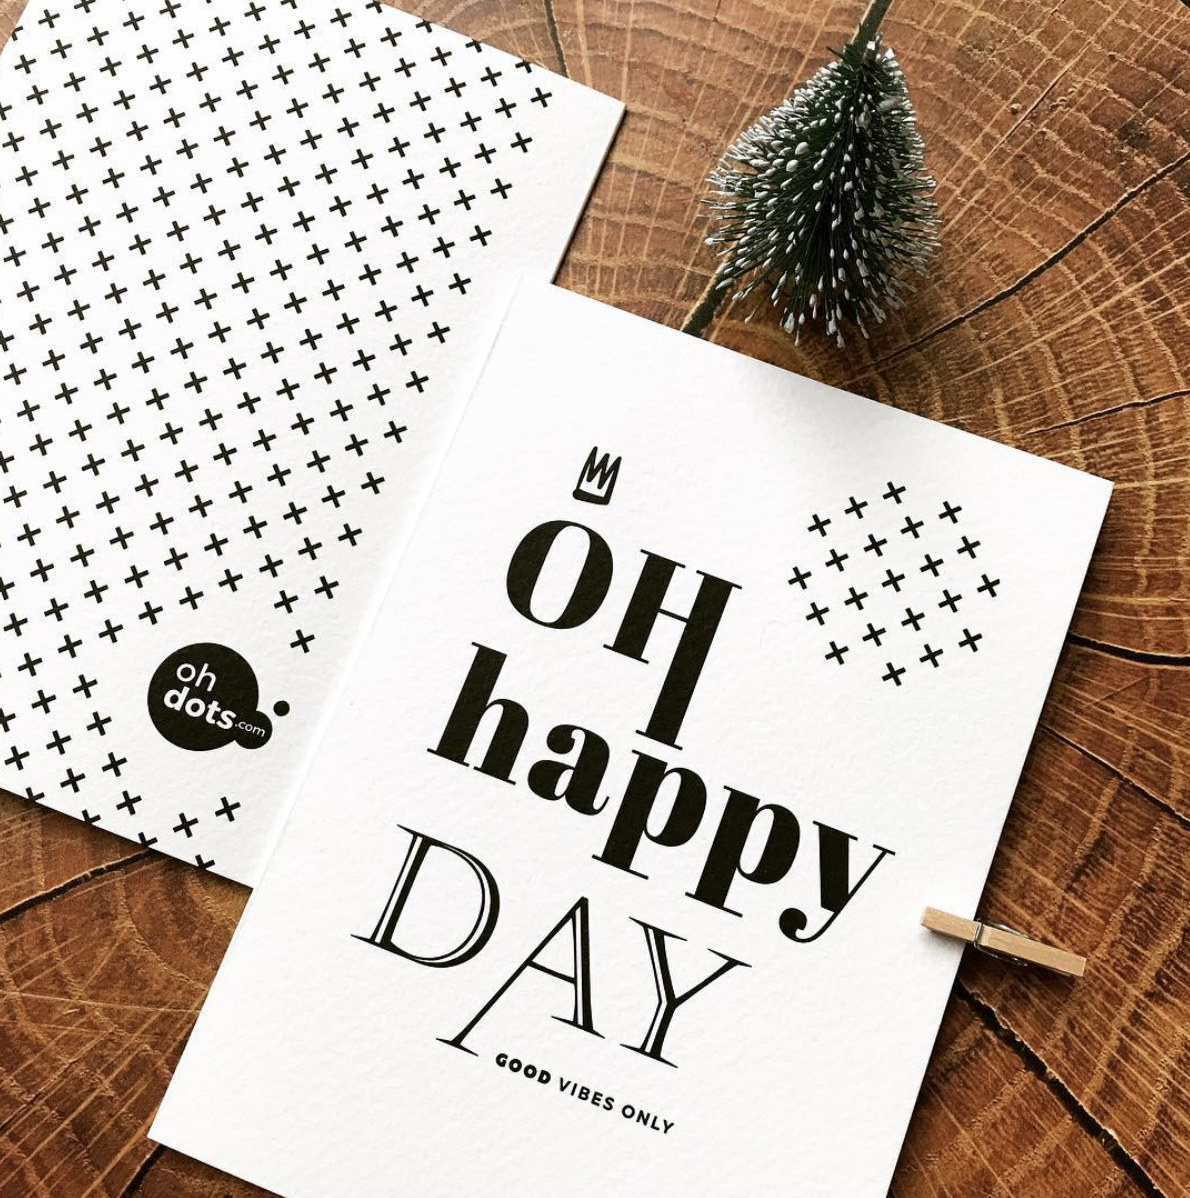 Oh Happy day! / Print